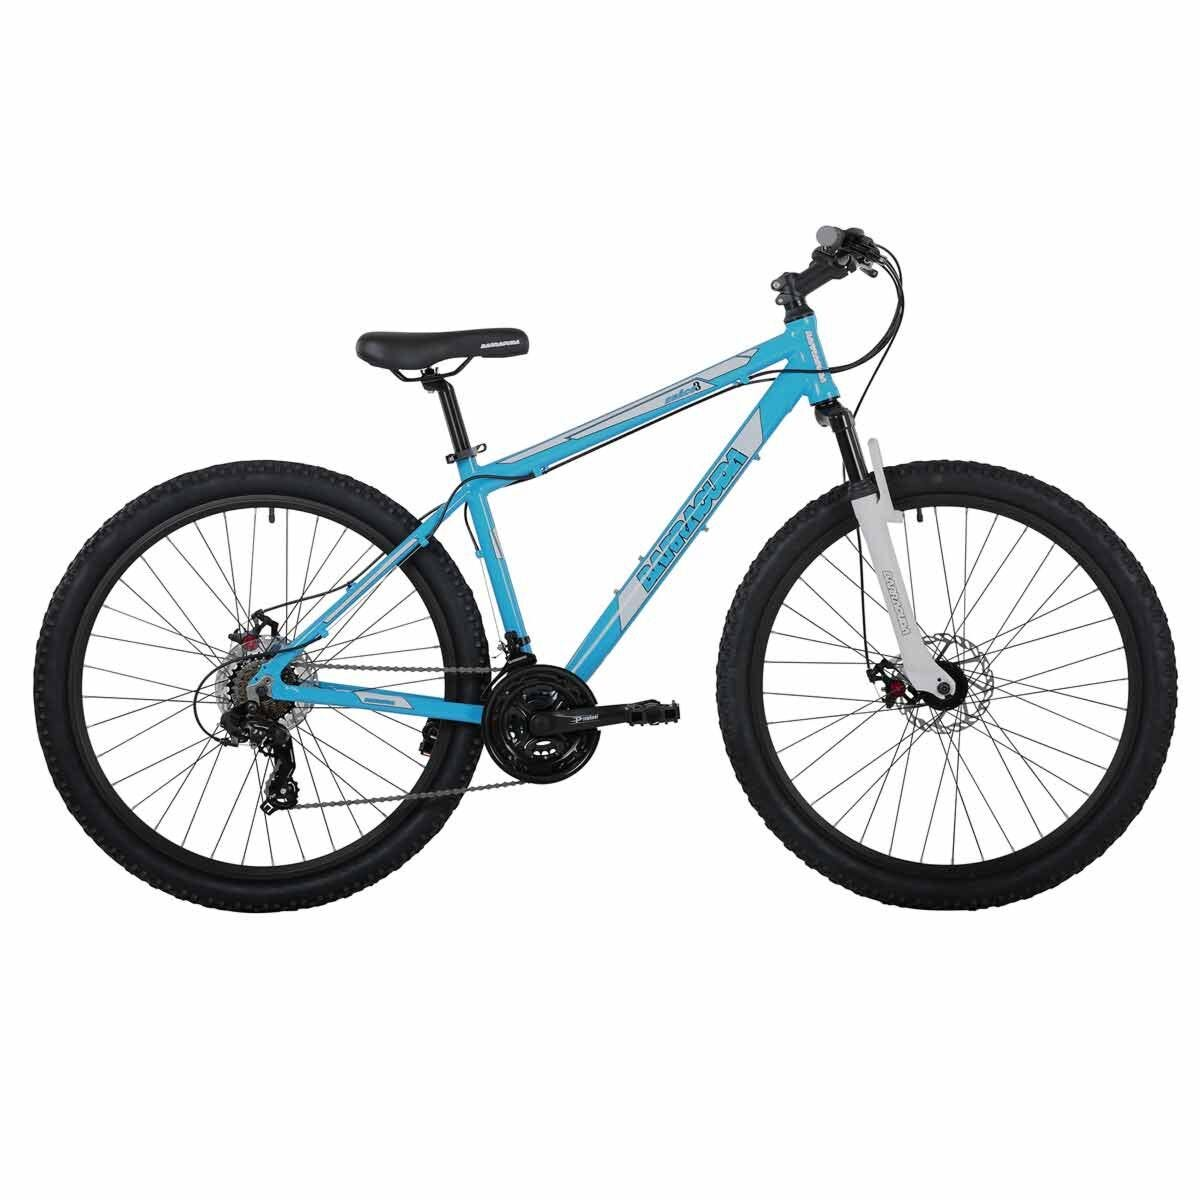 Barracuda Draco 3 Adult Mountain Bike 19 Inch Frame